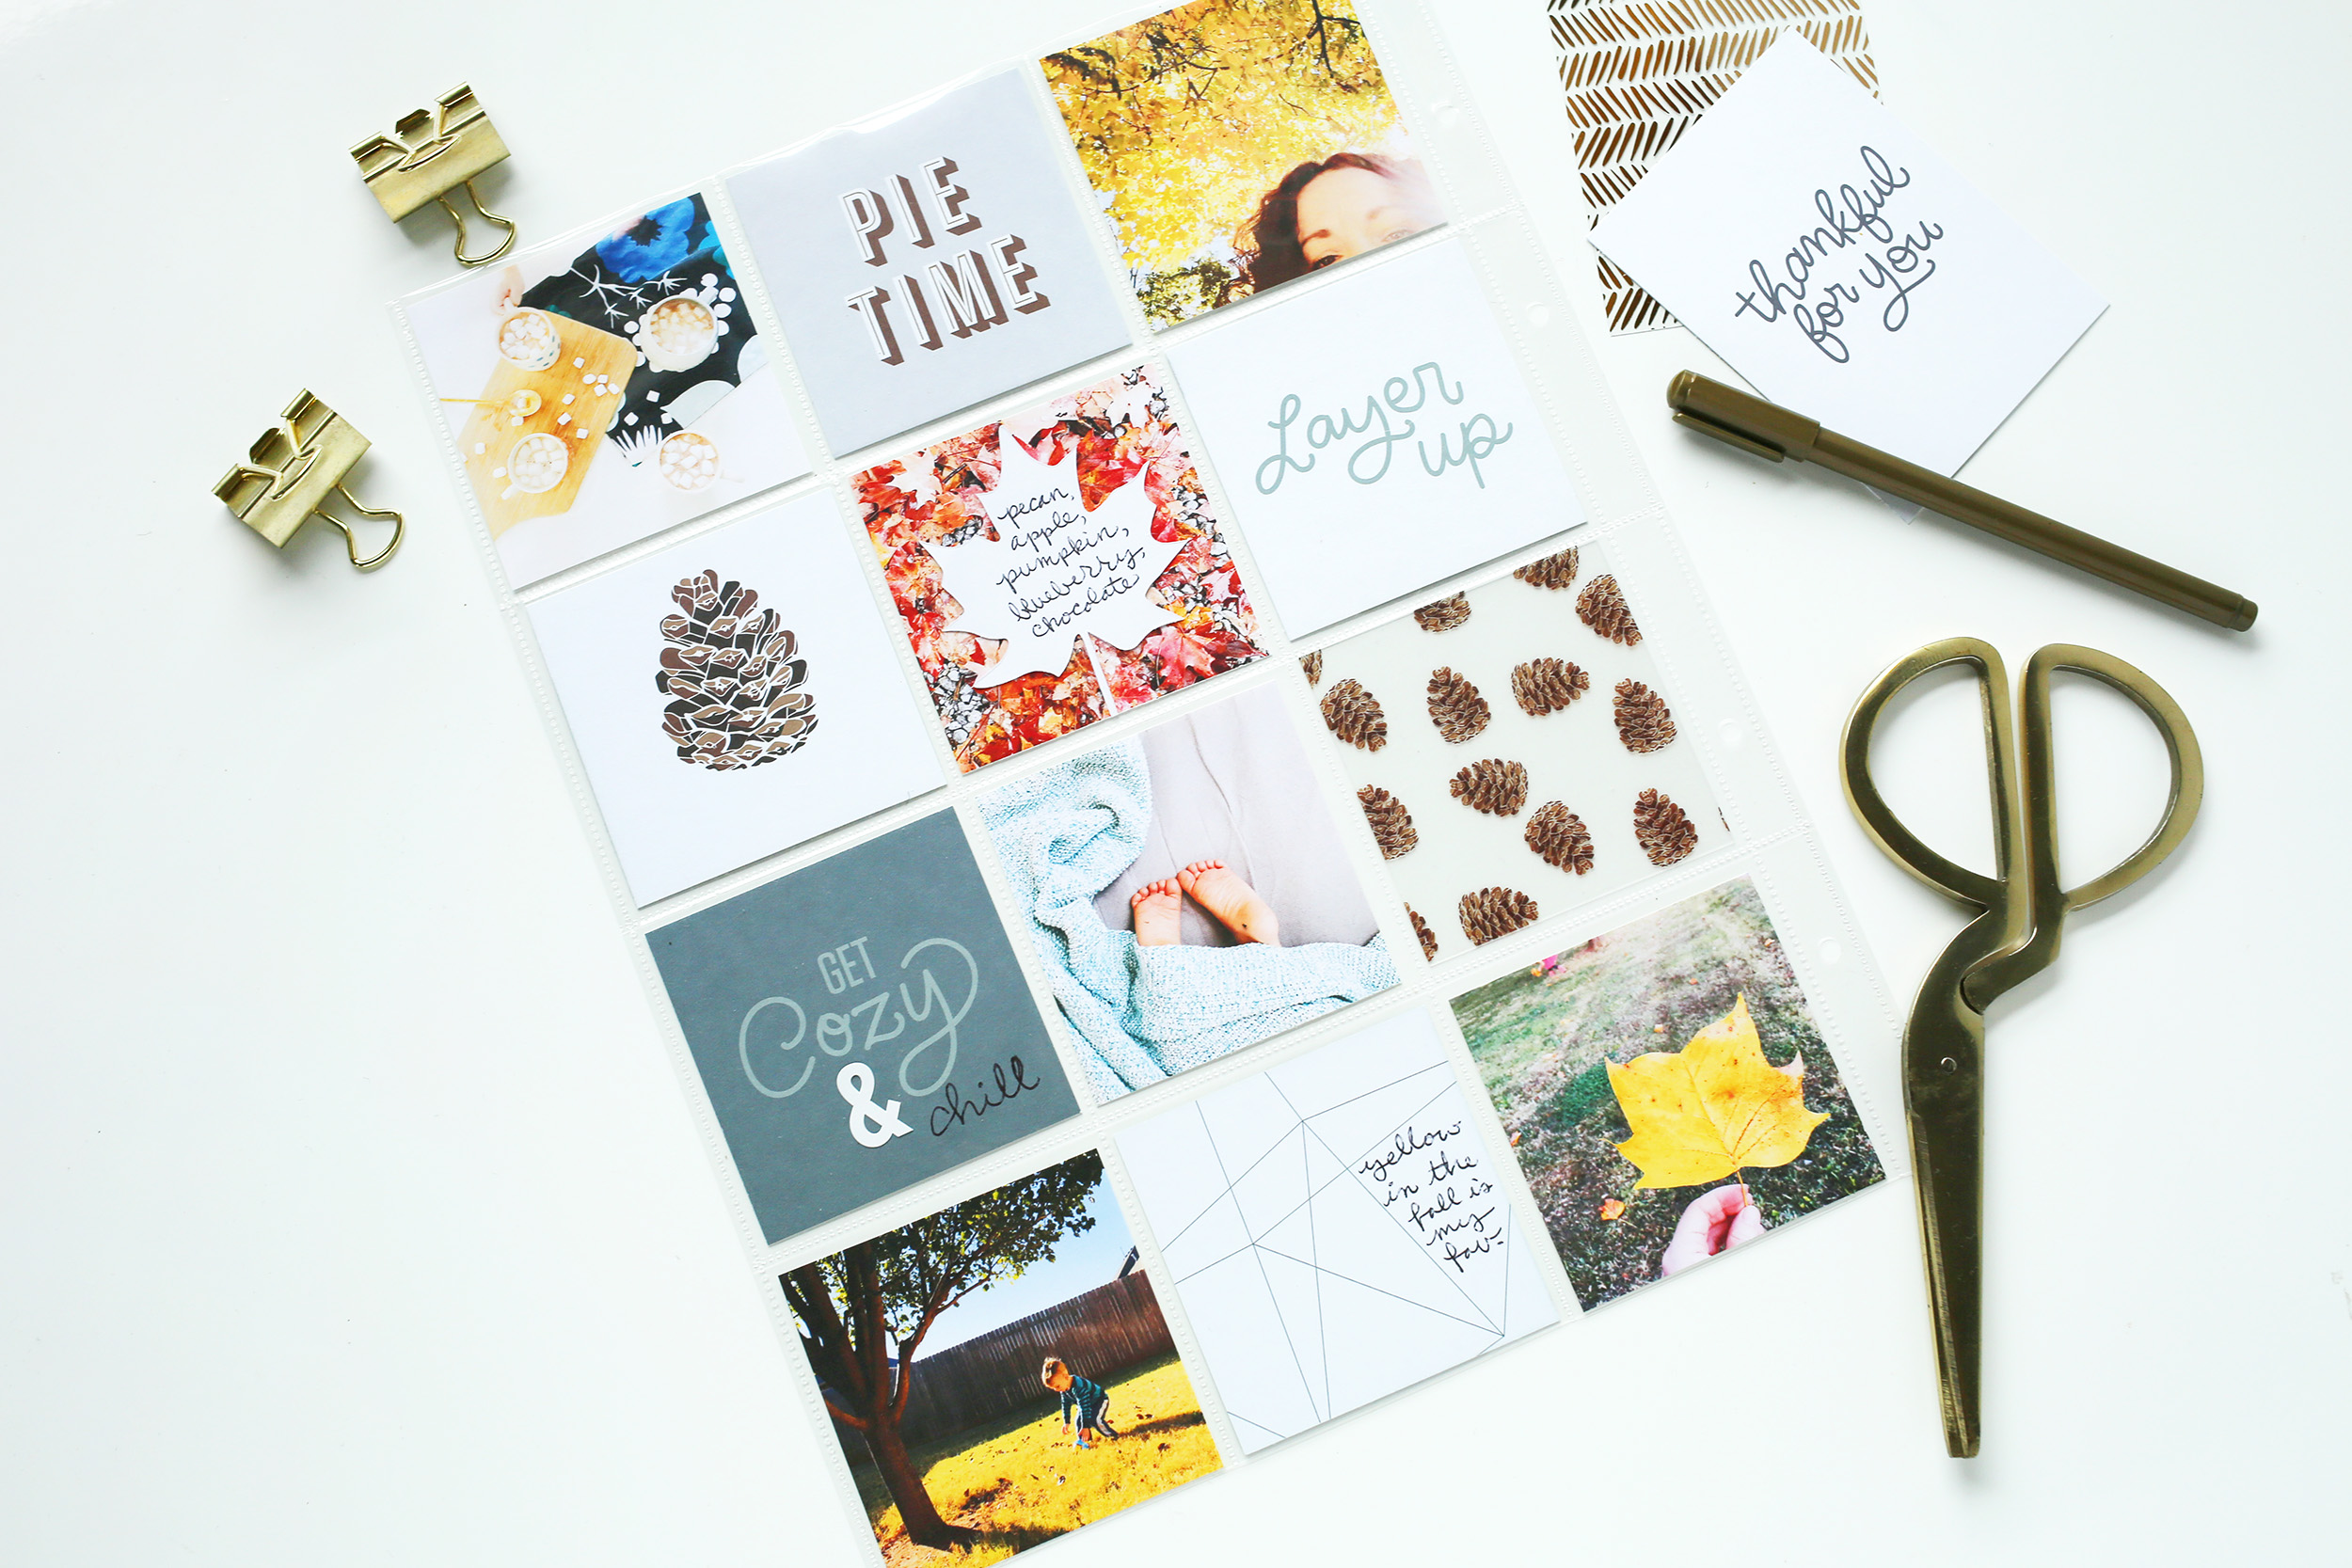 Scrapbook Sunday Messy Box from A Beautiful Mess. Document your favorite holiday memories